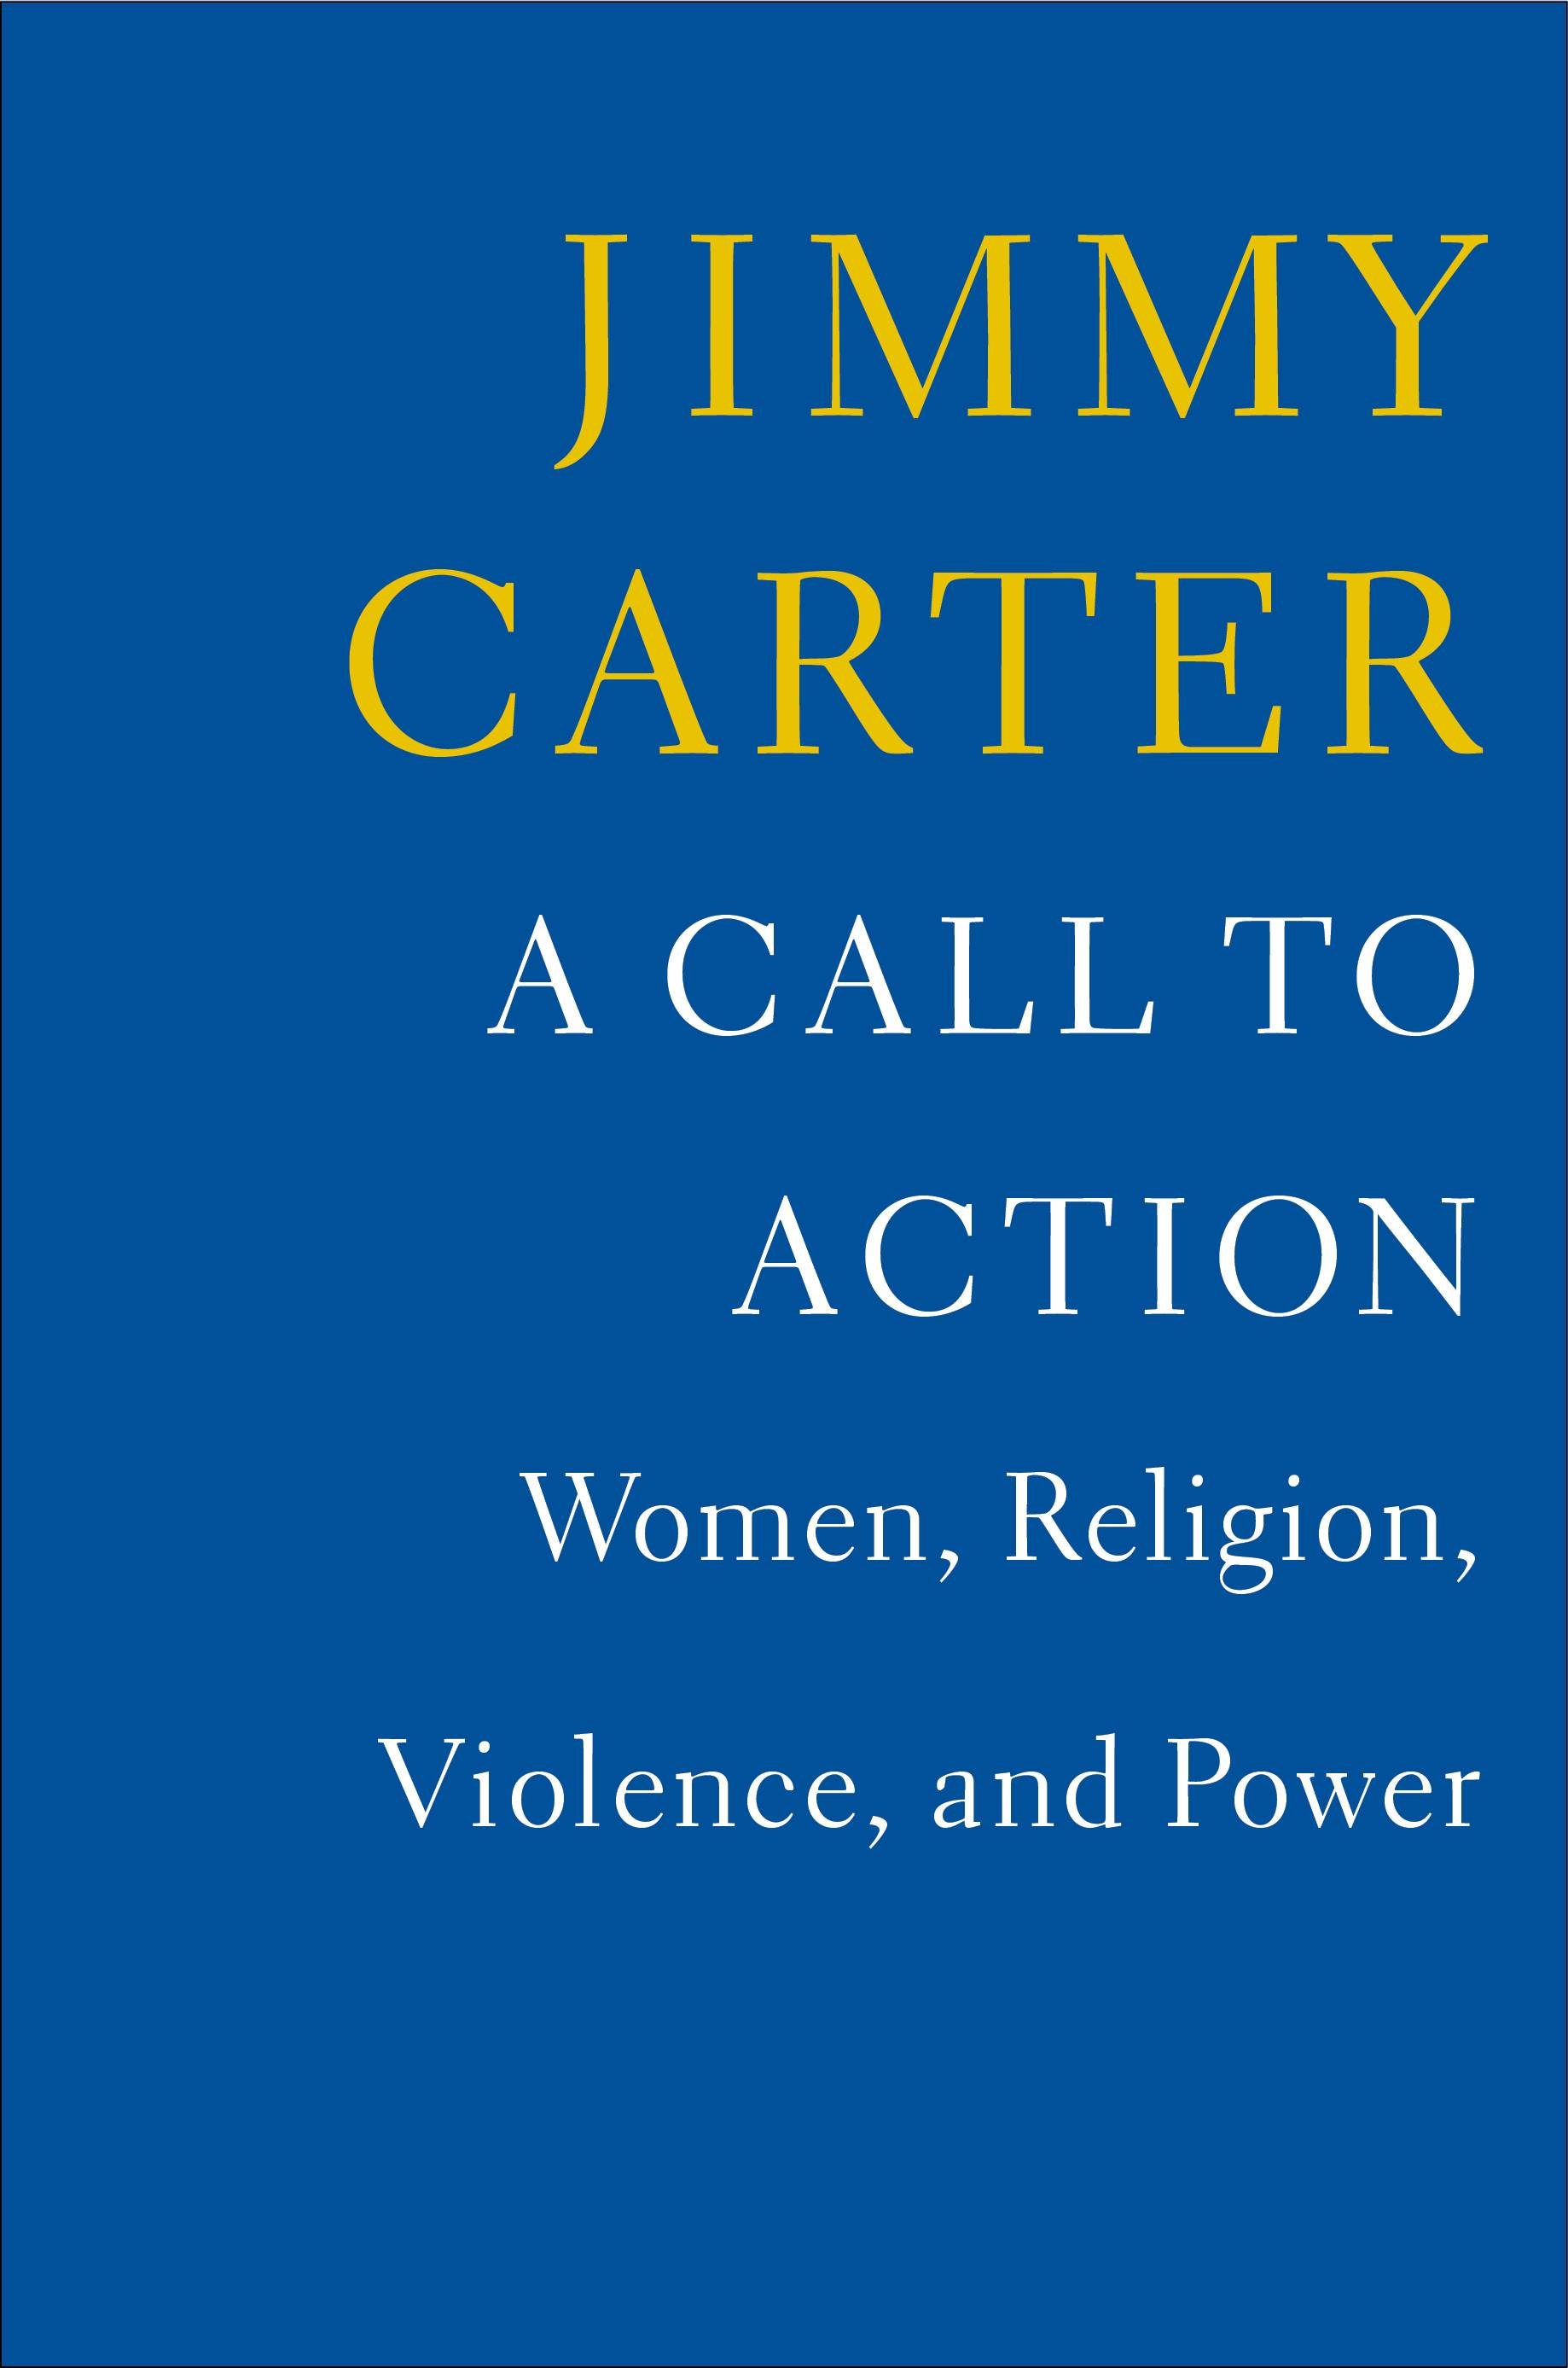 """A Call to Action: Women, Religion, Violence, and Power"" is the latest book from former President Jimmy Carter."